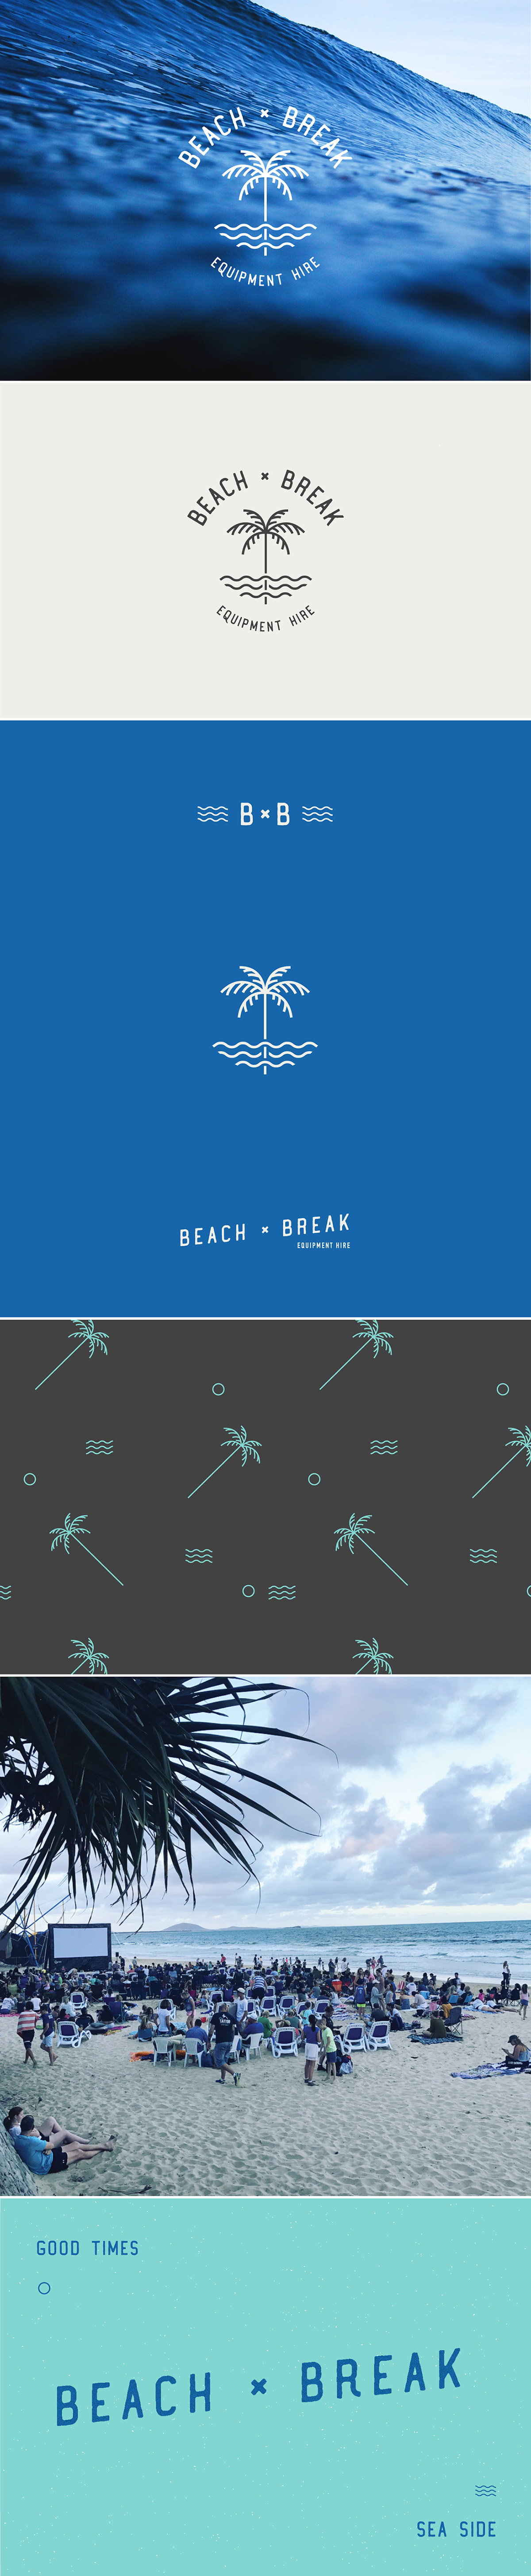 Beach Break Branding Design by Now or Never Design Studio